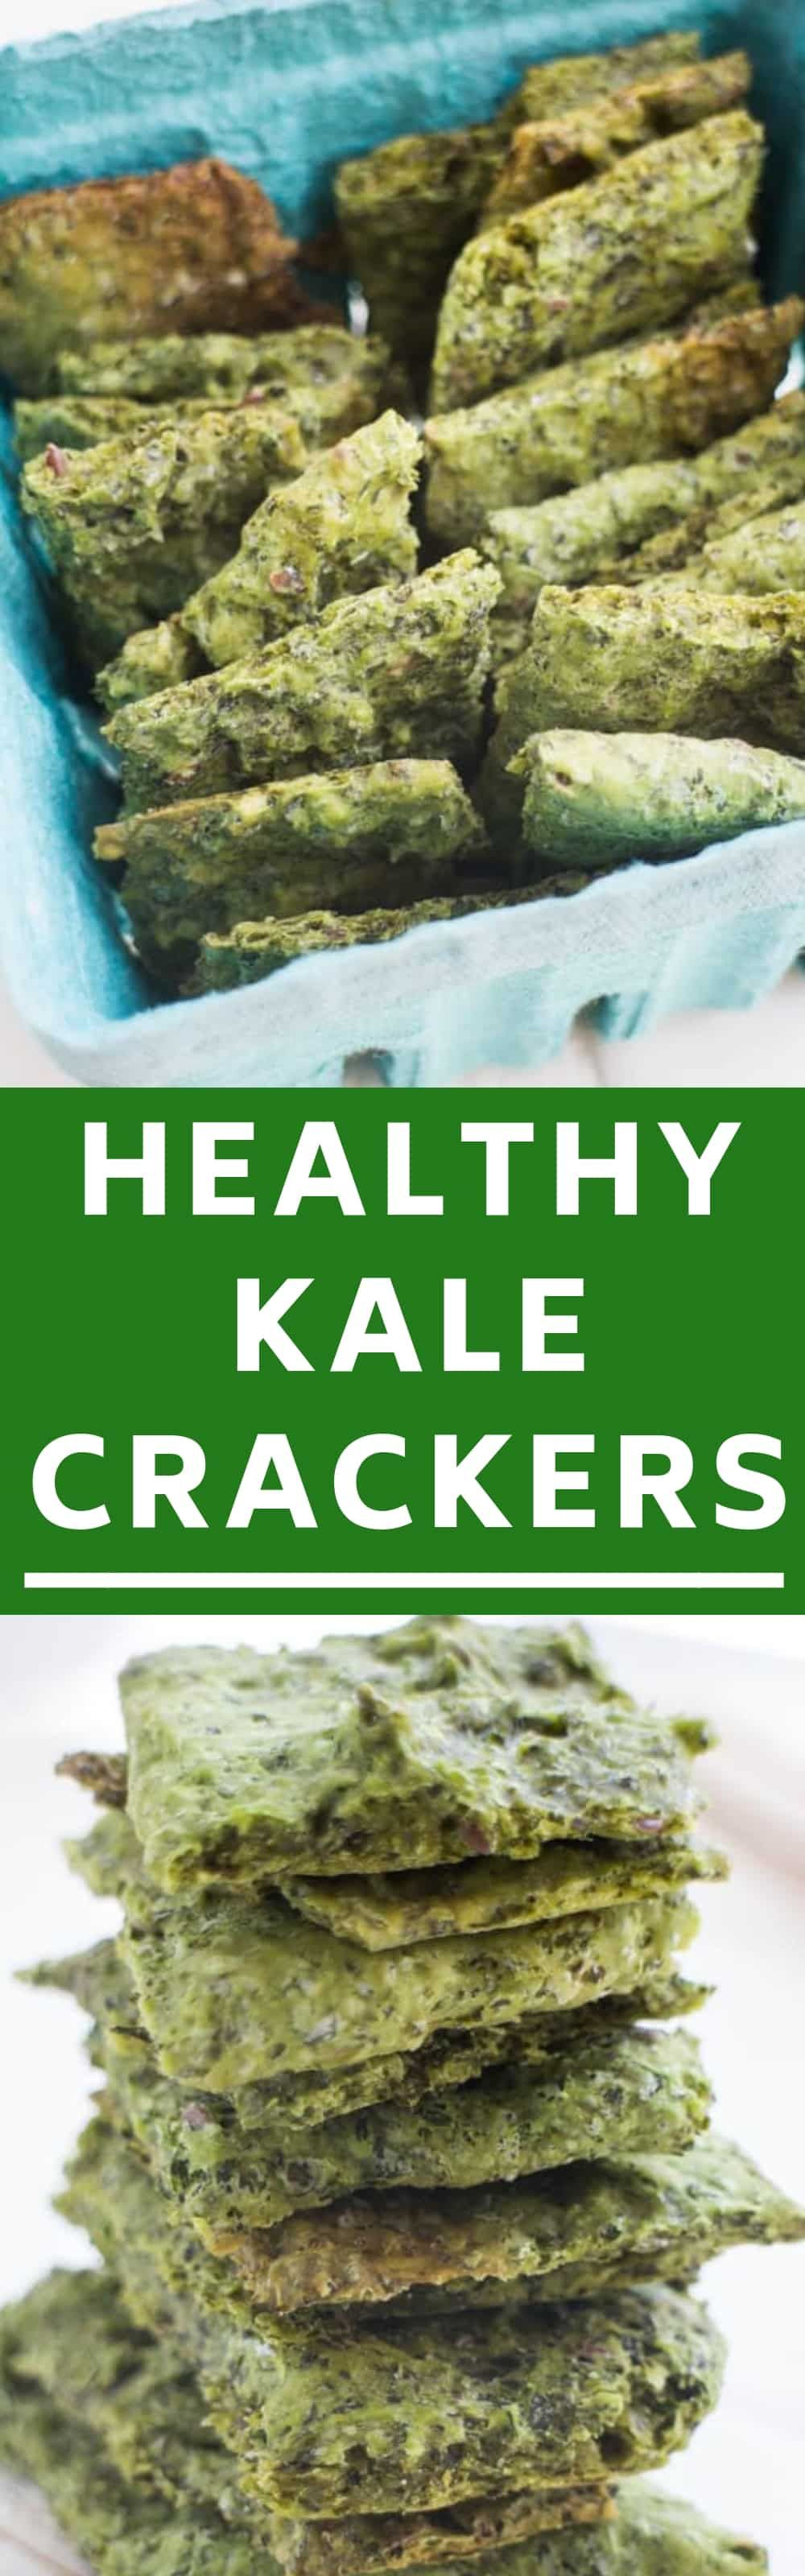 Easy Homemade Kale Crackers Recipe Made By Combining Kale And Flour They Are Sprinkled With Salt Low Carb Crackers Recipes Cracker Recipes Low Carb Crackers